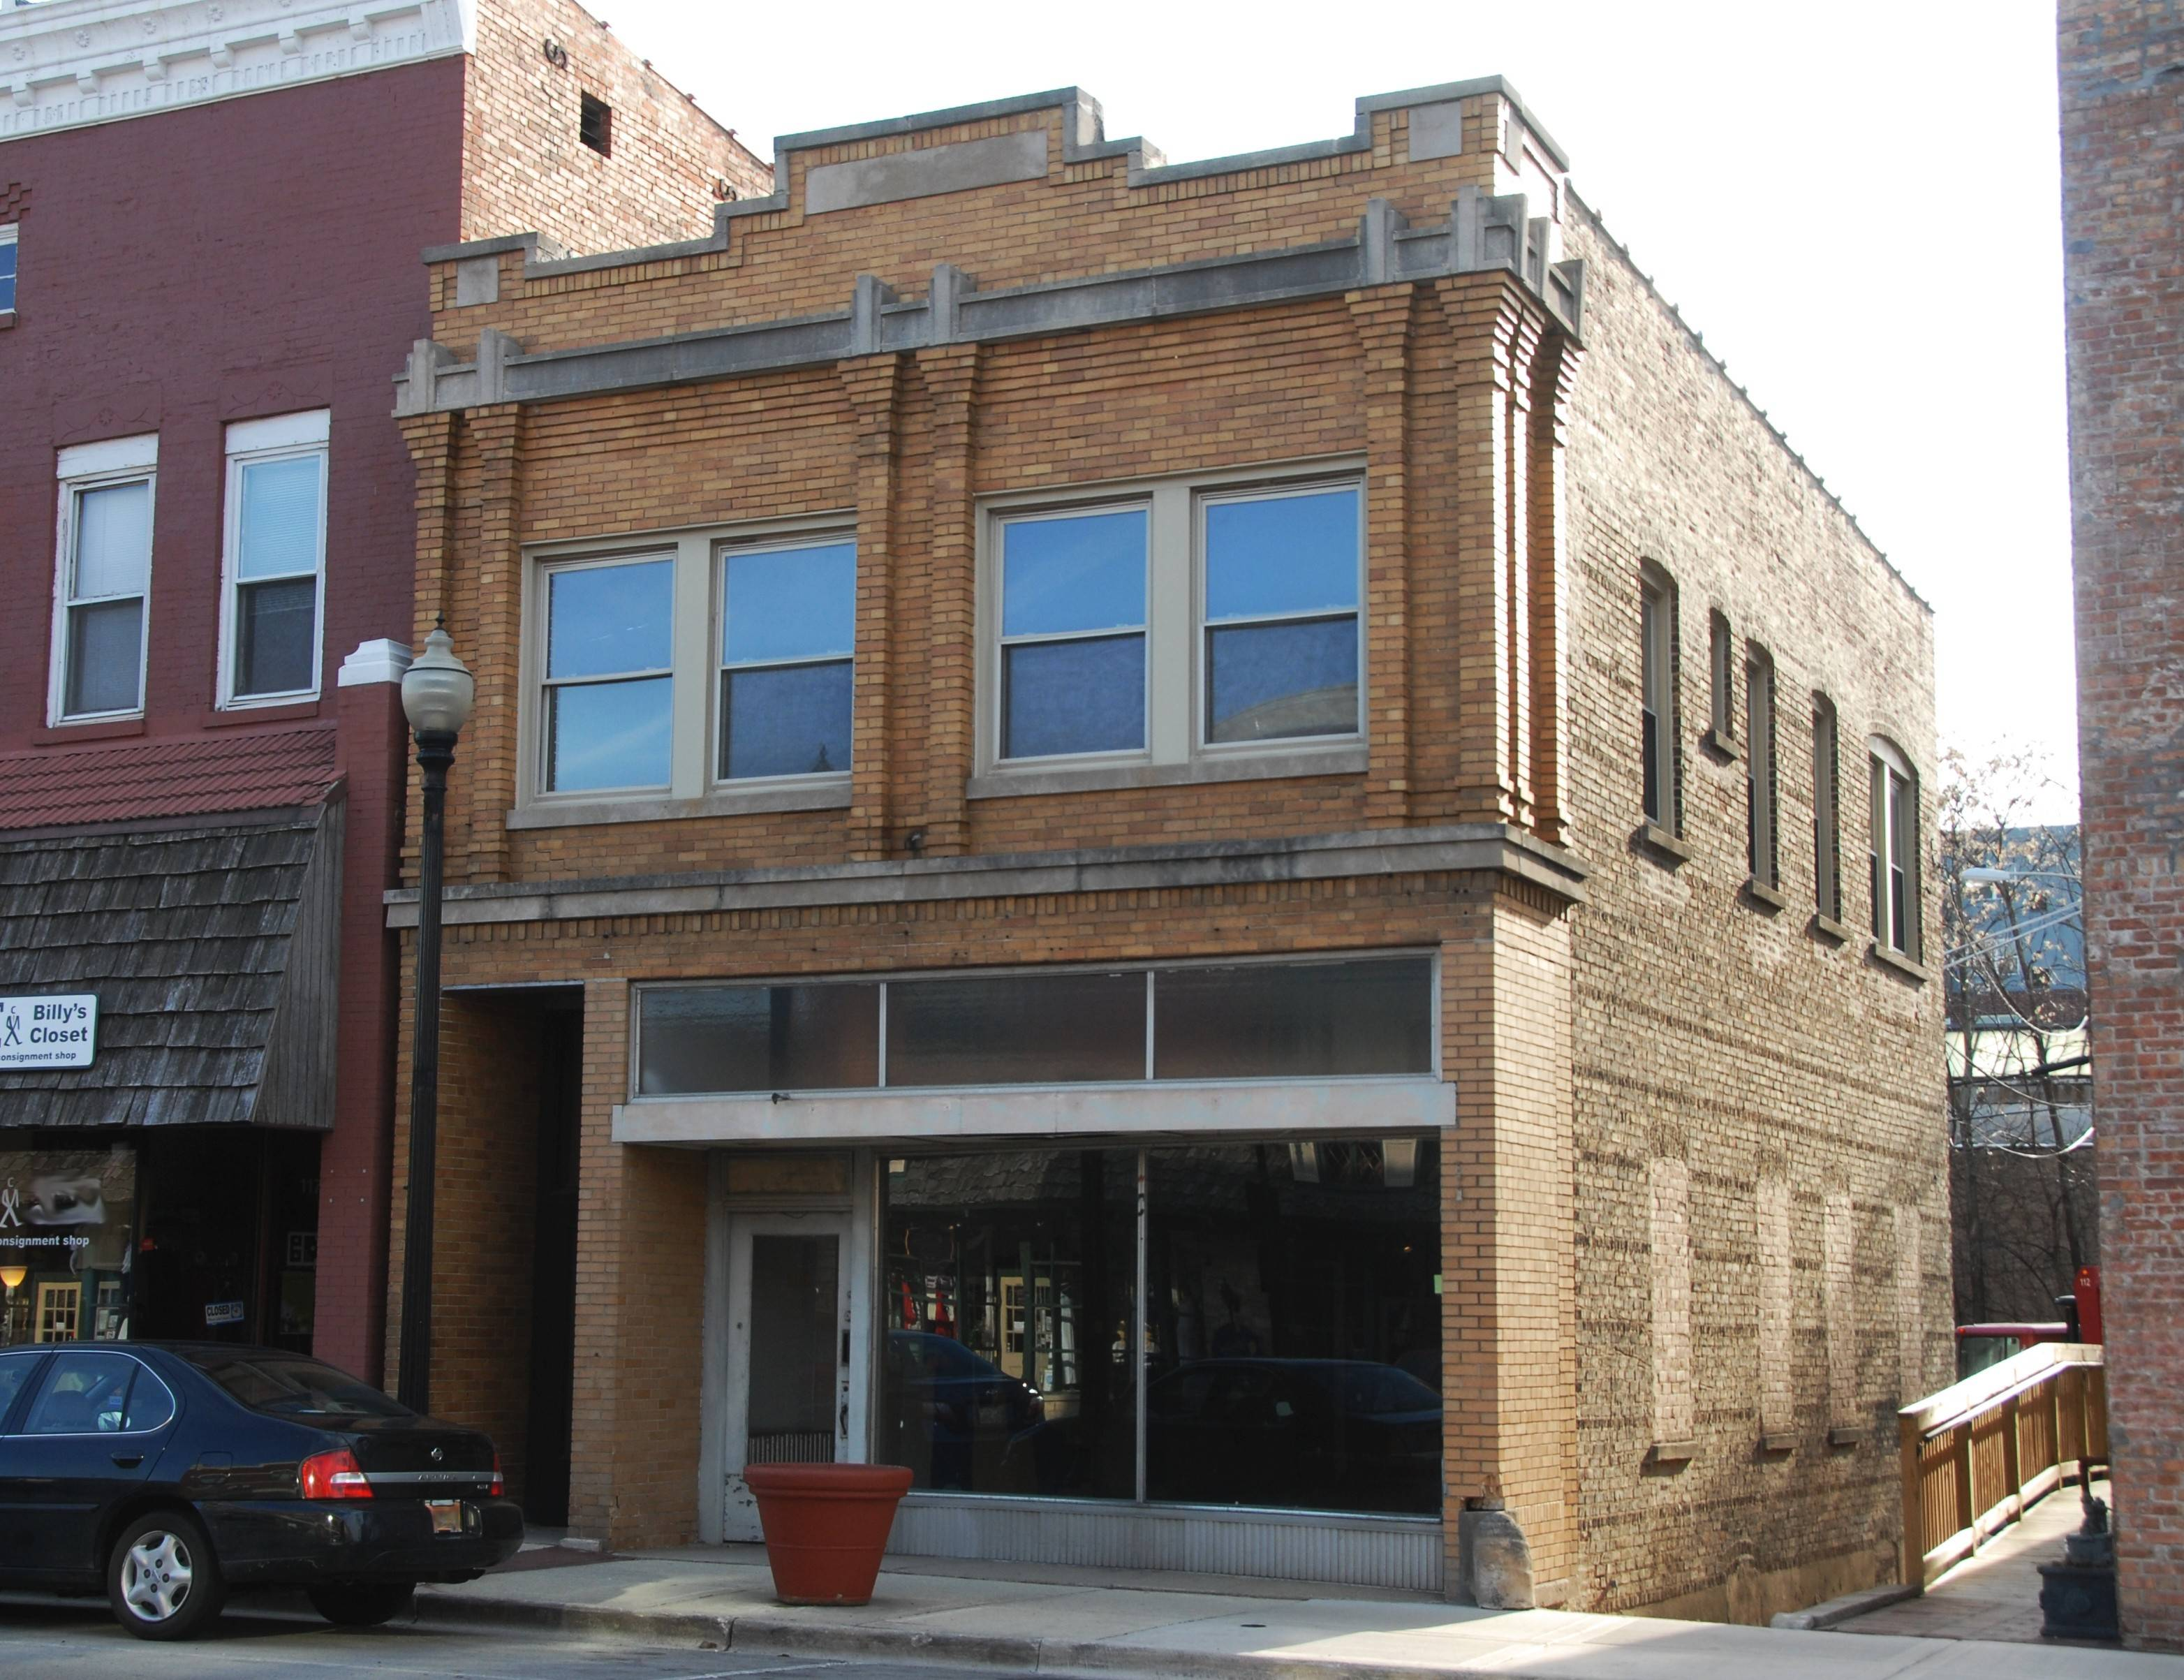 Wheaton city officials are hoping to sell the two-story building at 111-113 N. Main St. to a buyer who will renovate it and turn the ground floor into retail and the second floor into an office or residential unit.